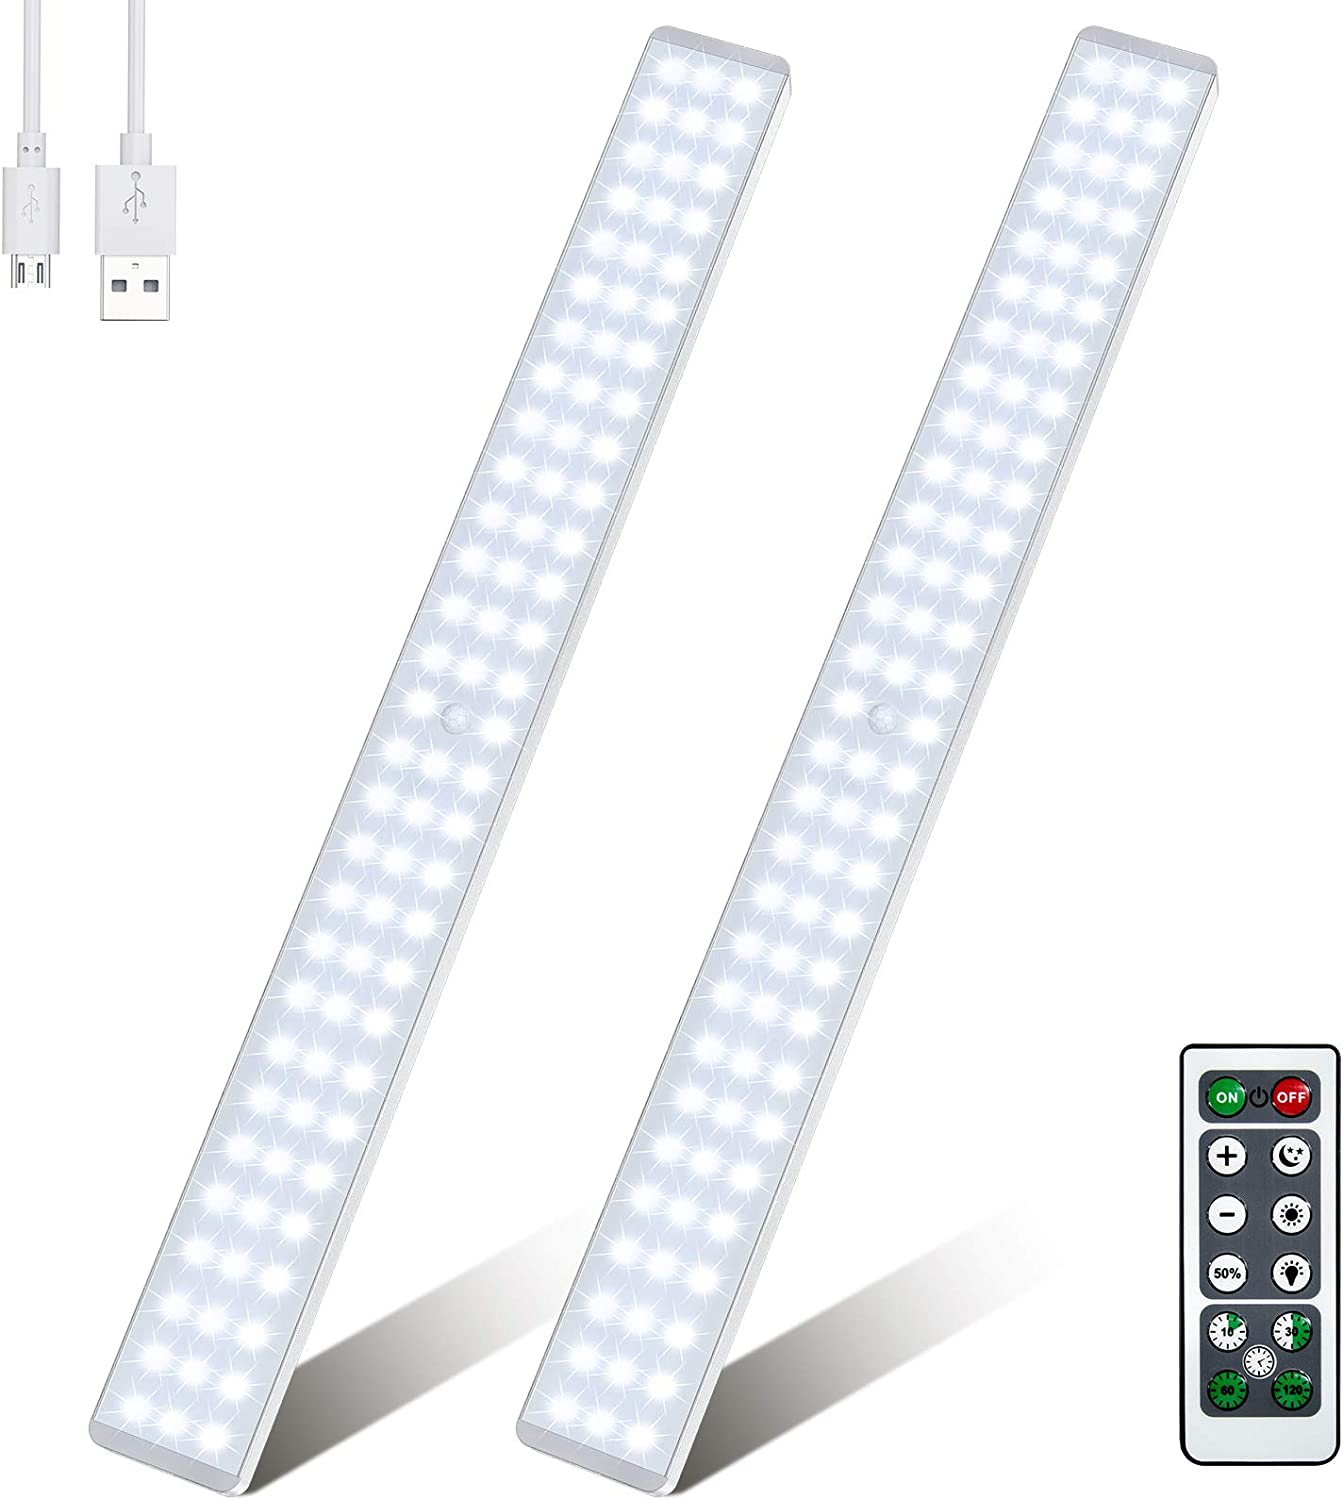 Best for Large Spaces Under Cabinet Wireless Light: [86 LED] With Remote Control